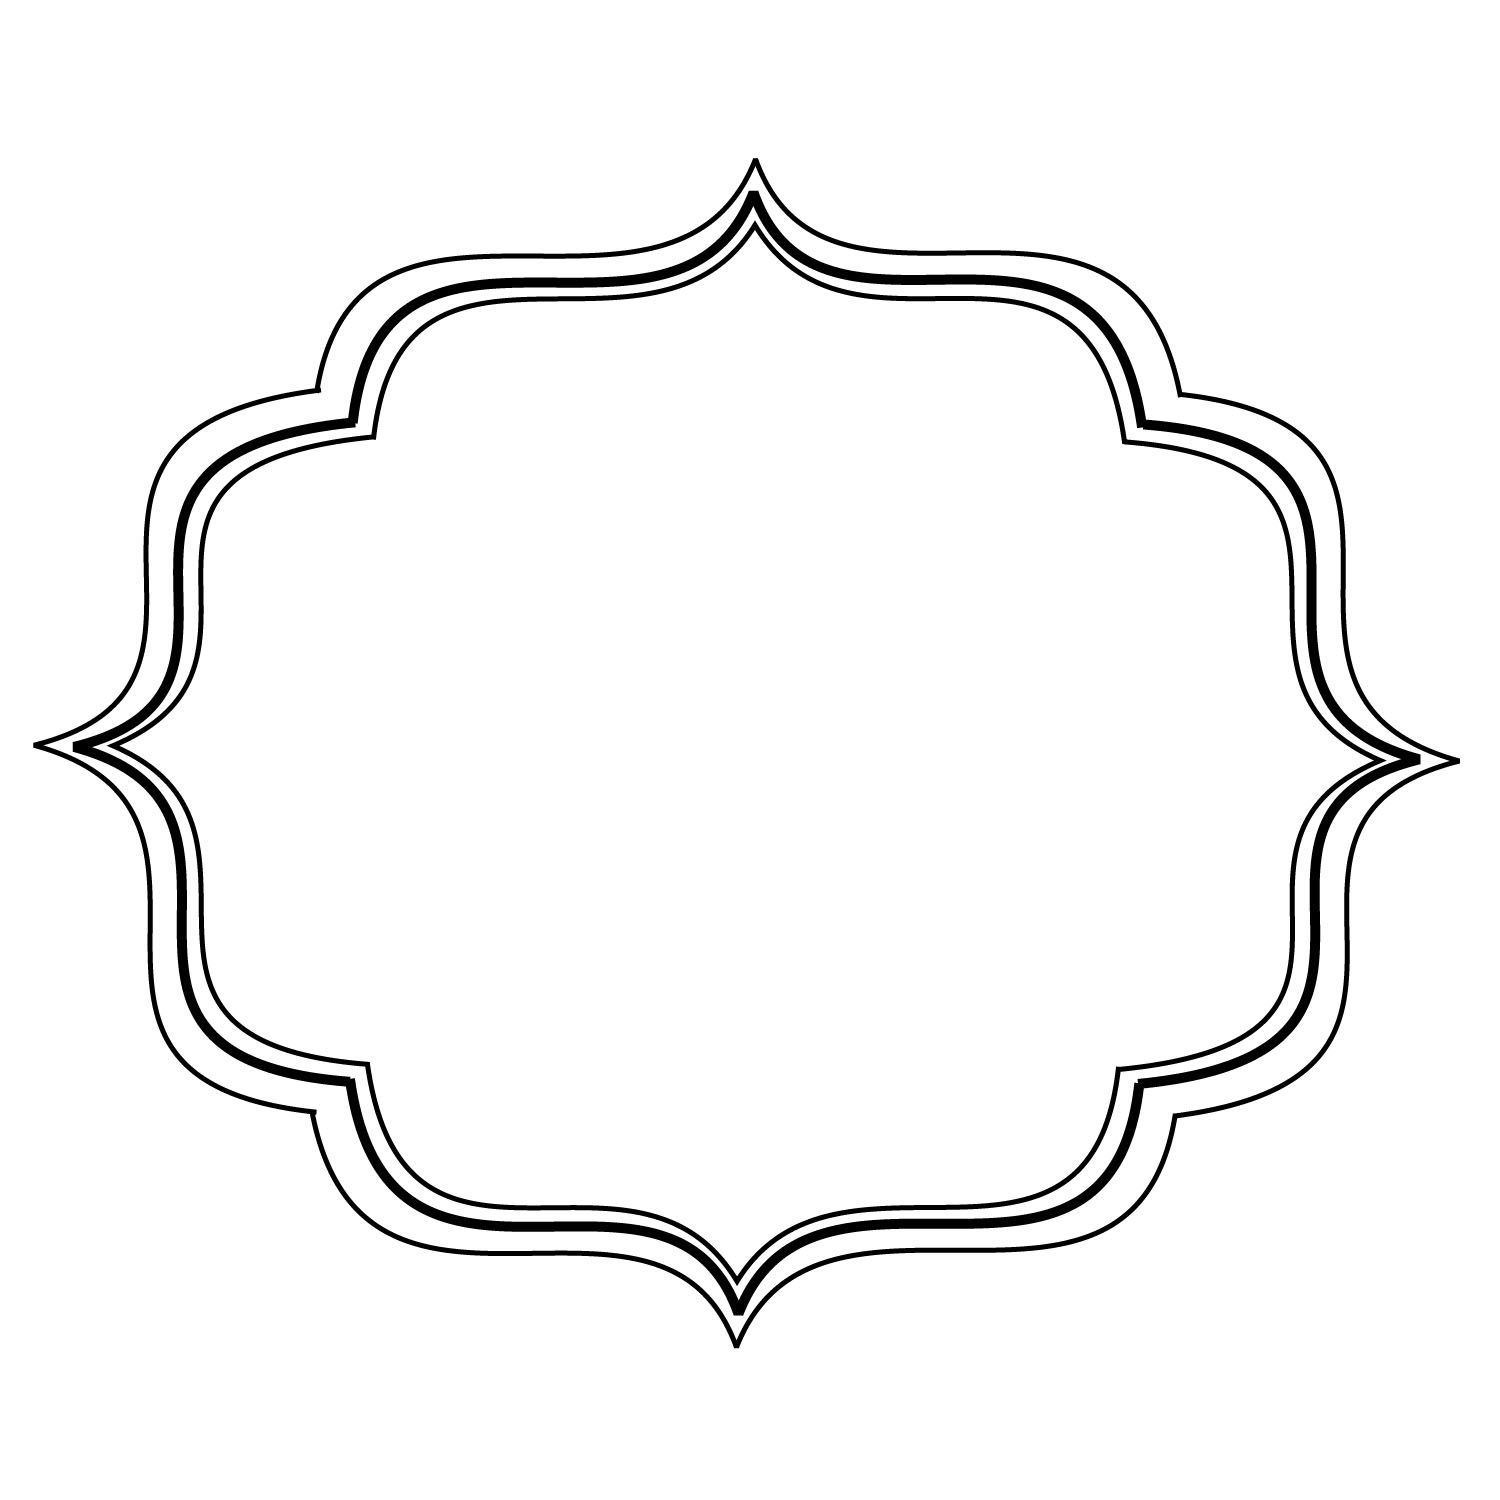 Simple Filigree Scroll Designs Frame Image